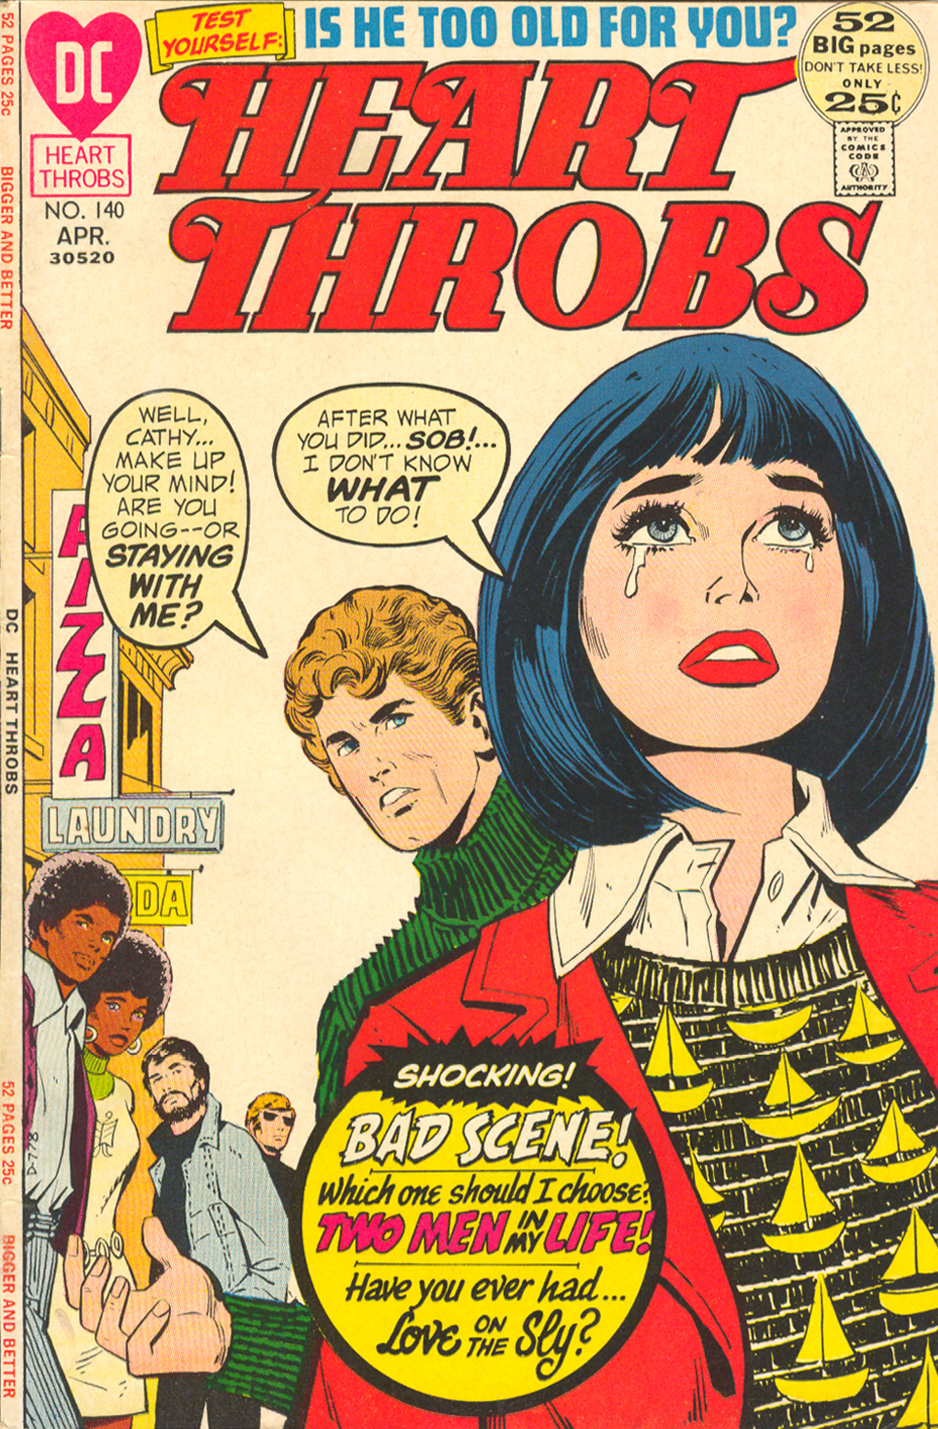 Heart Throbs  #140 (April 1972)